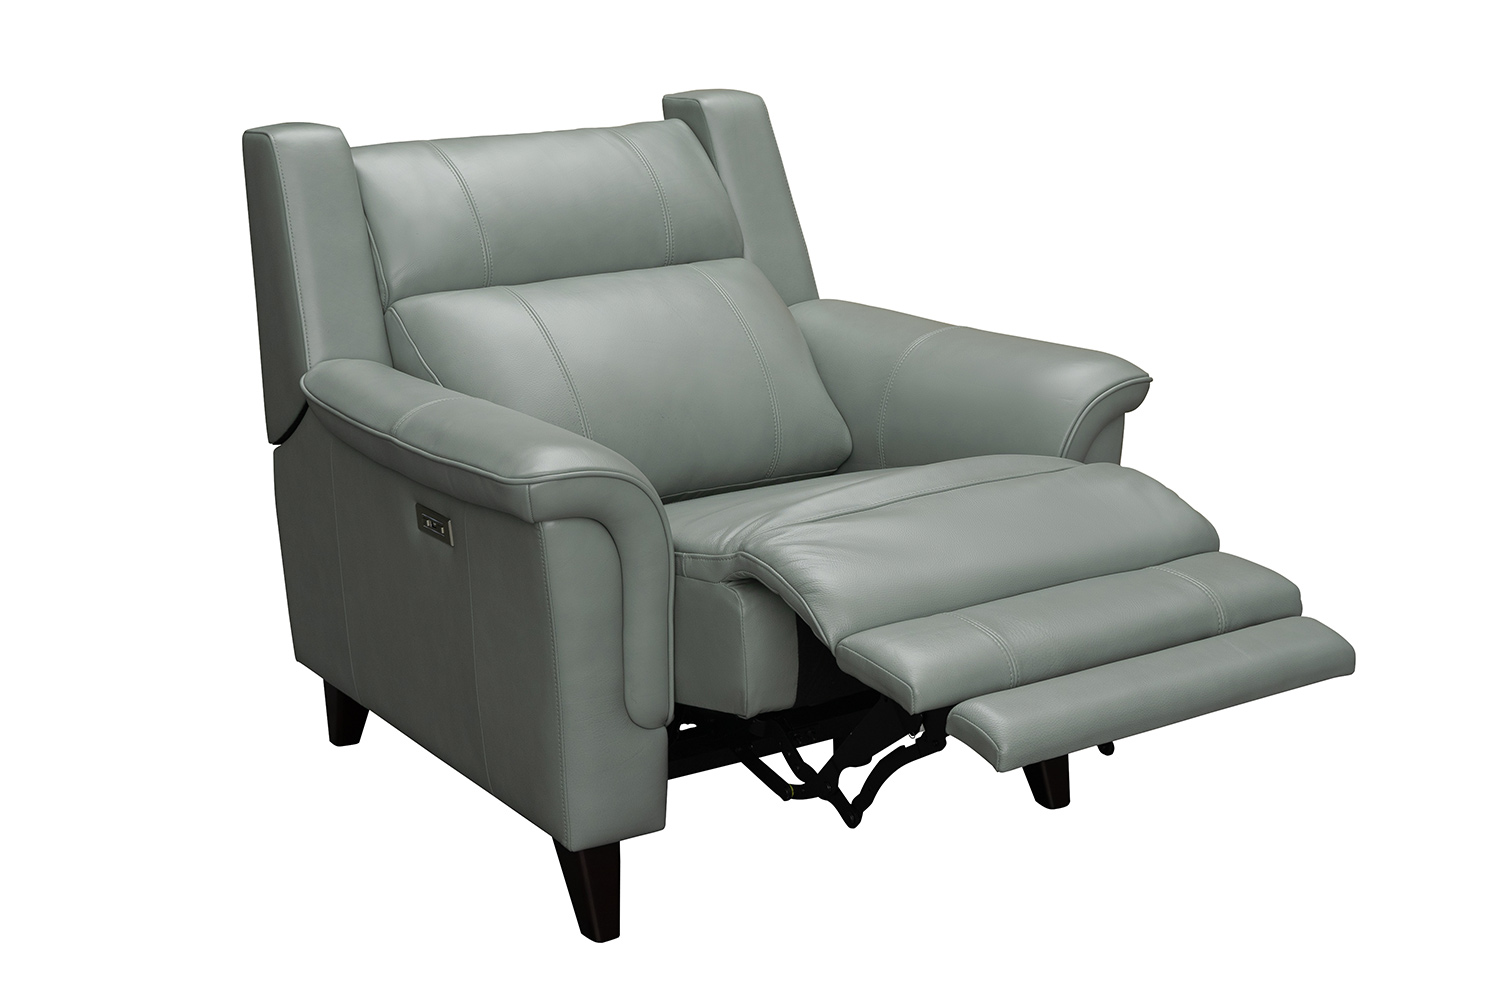 Barcalounger Kester Power Recliner Chair with Power Head Rest - Lorenzo Mint/Leather match